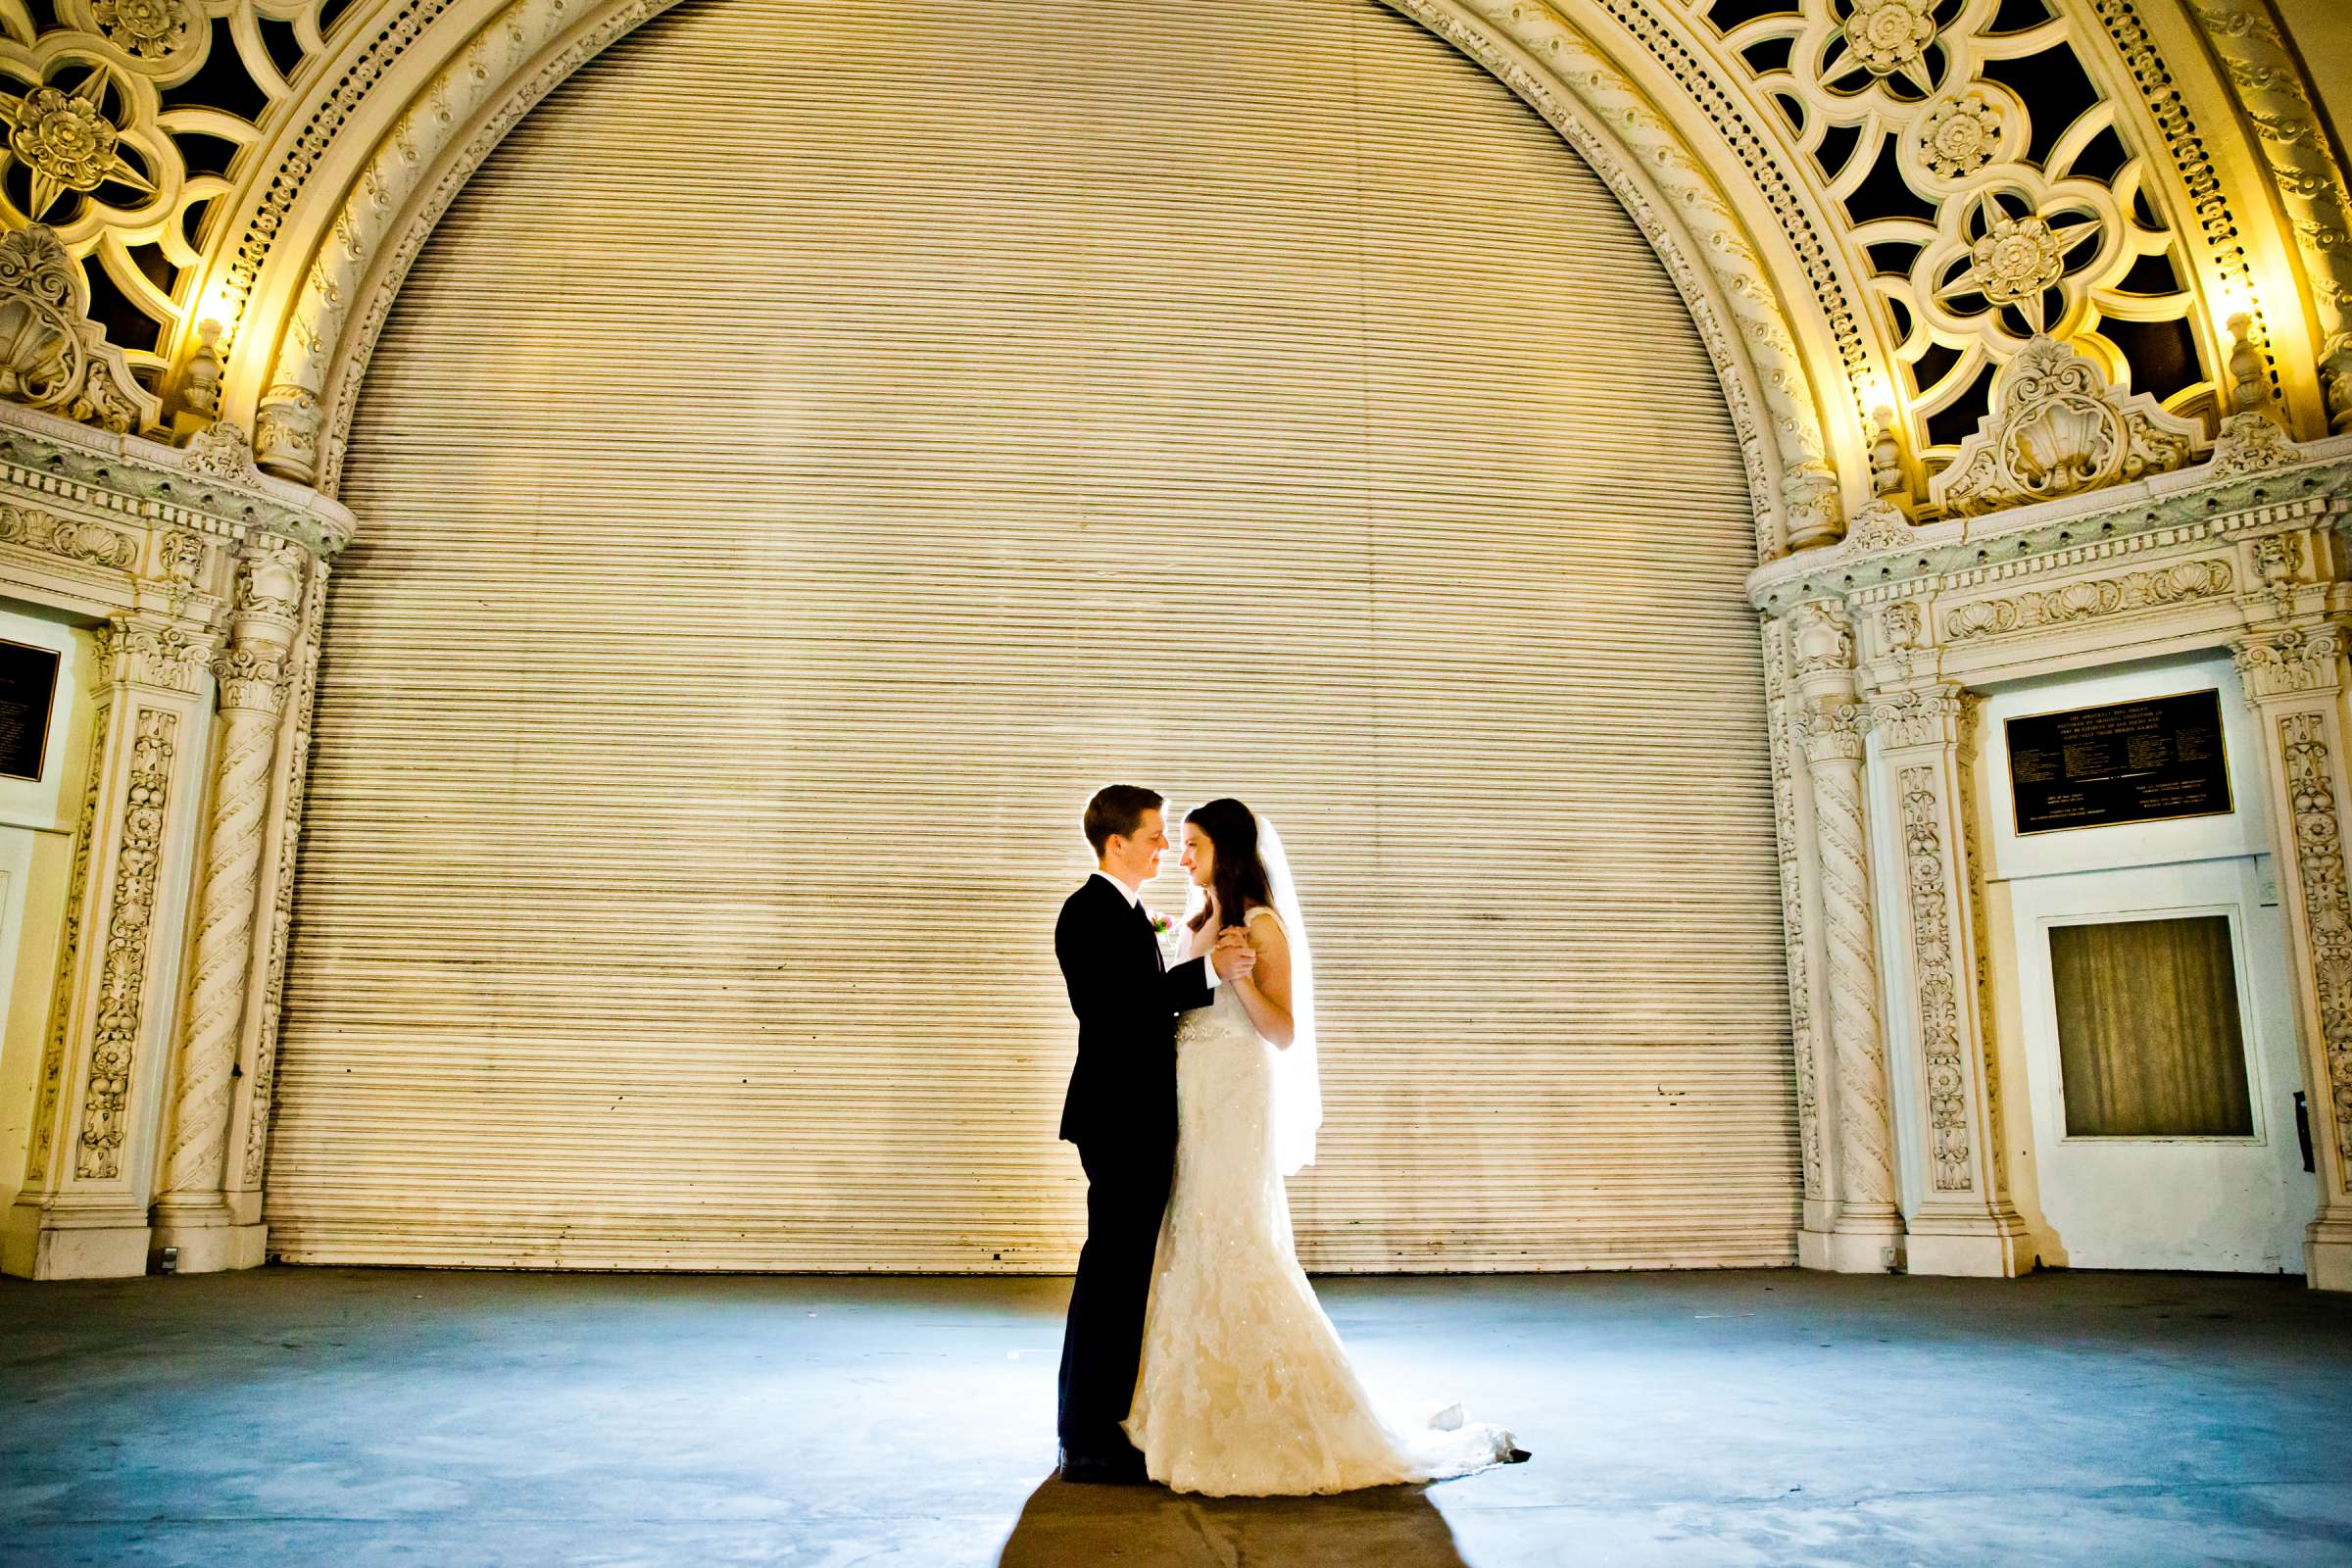 The Prado Wedding coordinated by First Comes Love Weddings & Events, Erin and Peter Wedding Photo #2 by True Photography